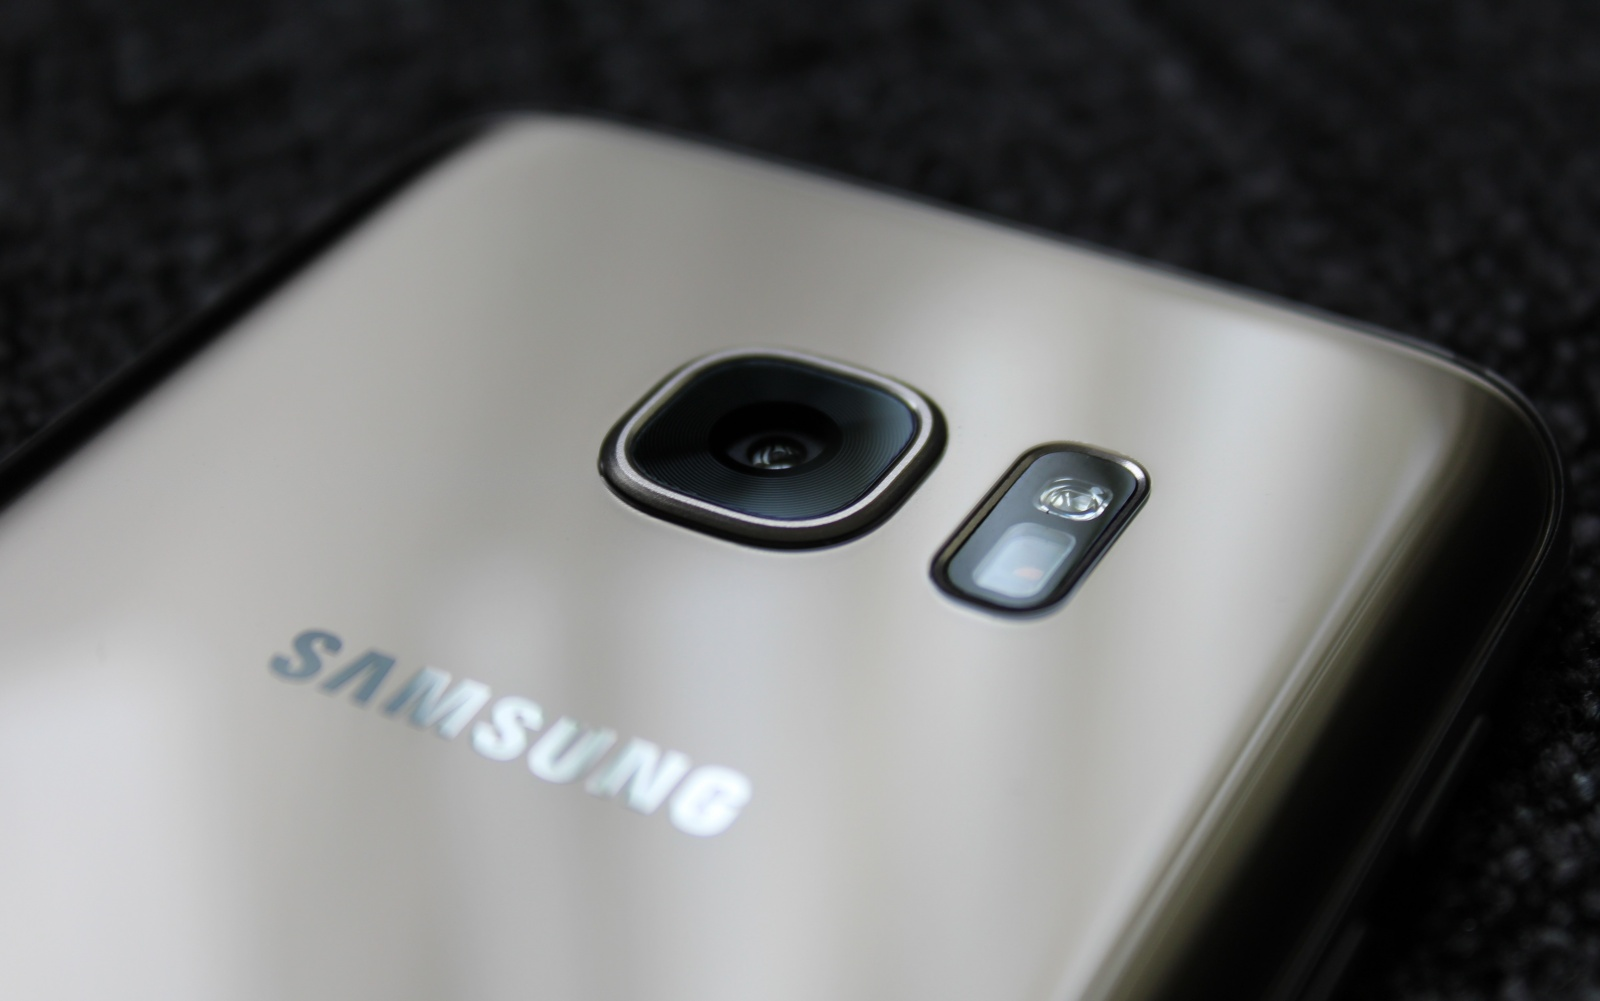 Samsung could beat Apple to dual-lens smartphone cameras